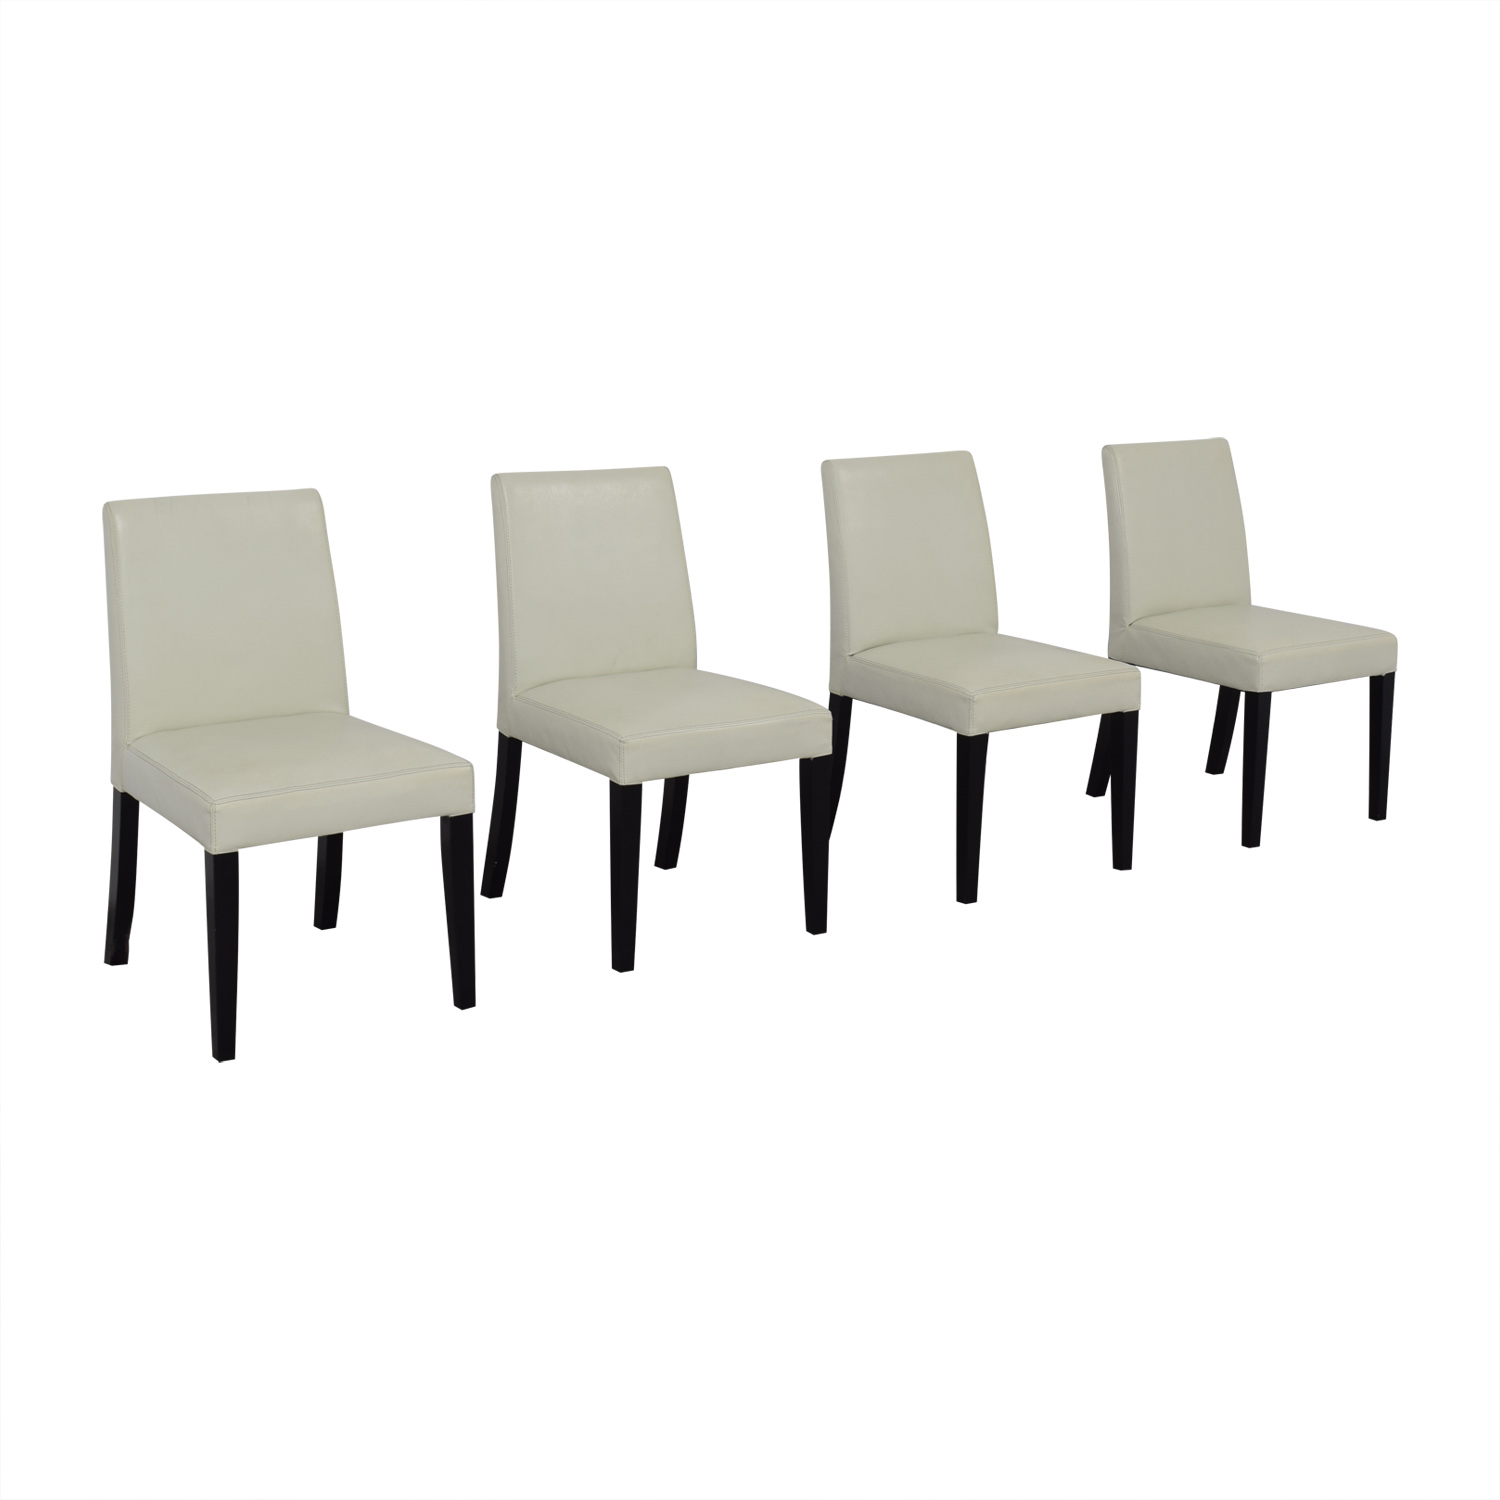 Crate & Barrel White Leather Dining Chairs / Dining Chairs